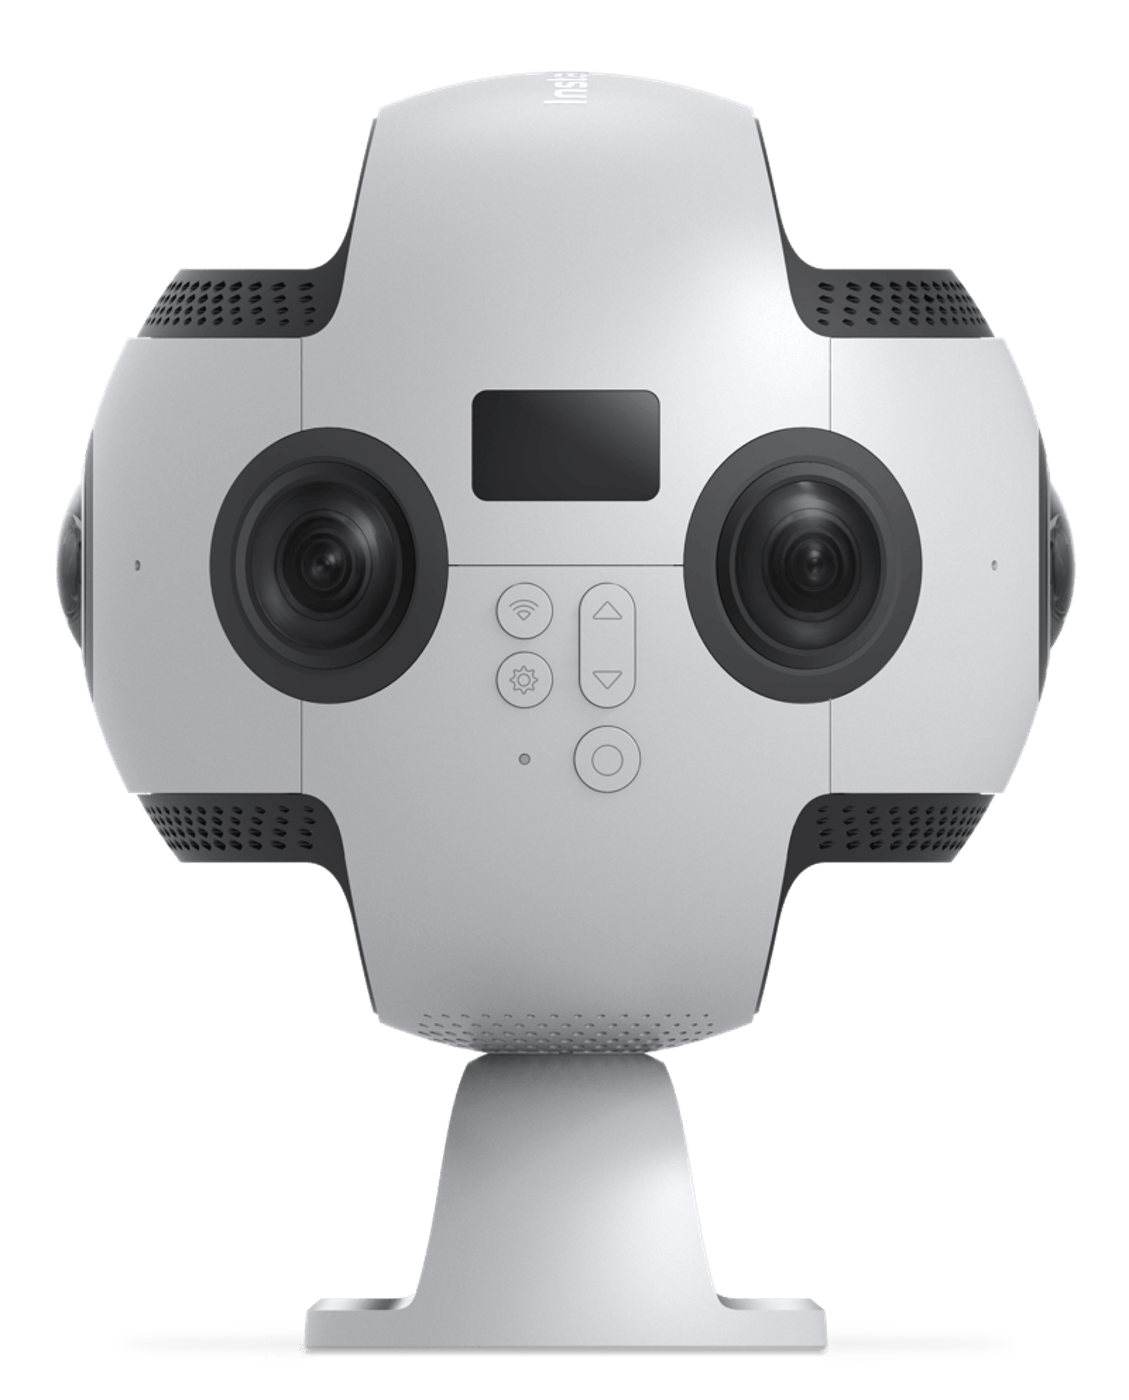 Insta360 S Vr Cameras Have Iphone Android And Pro Users Covered